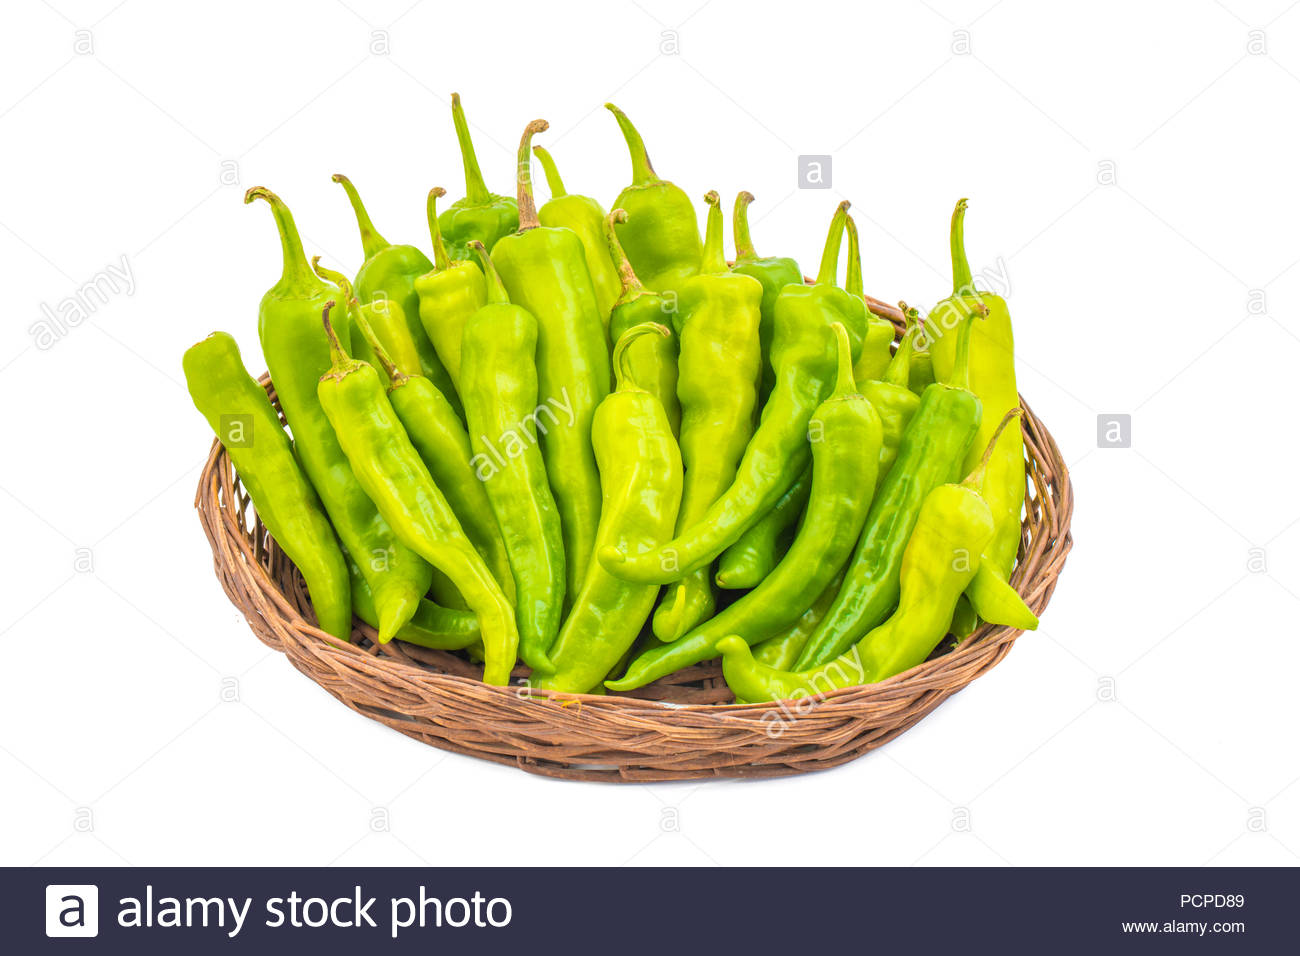 group of Green hot chili peppers - Stock Image